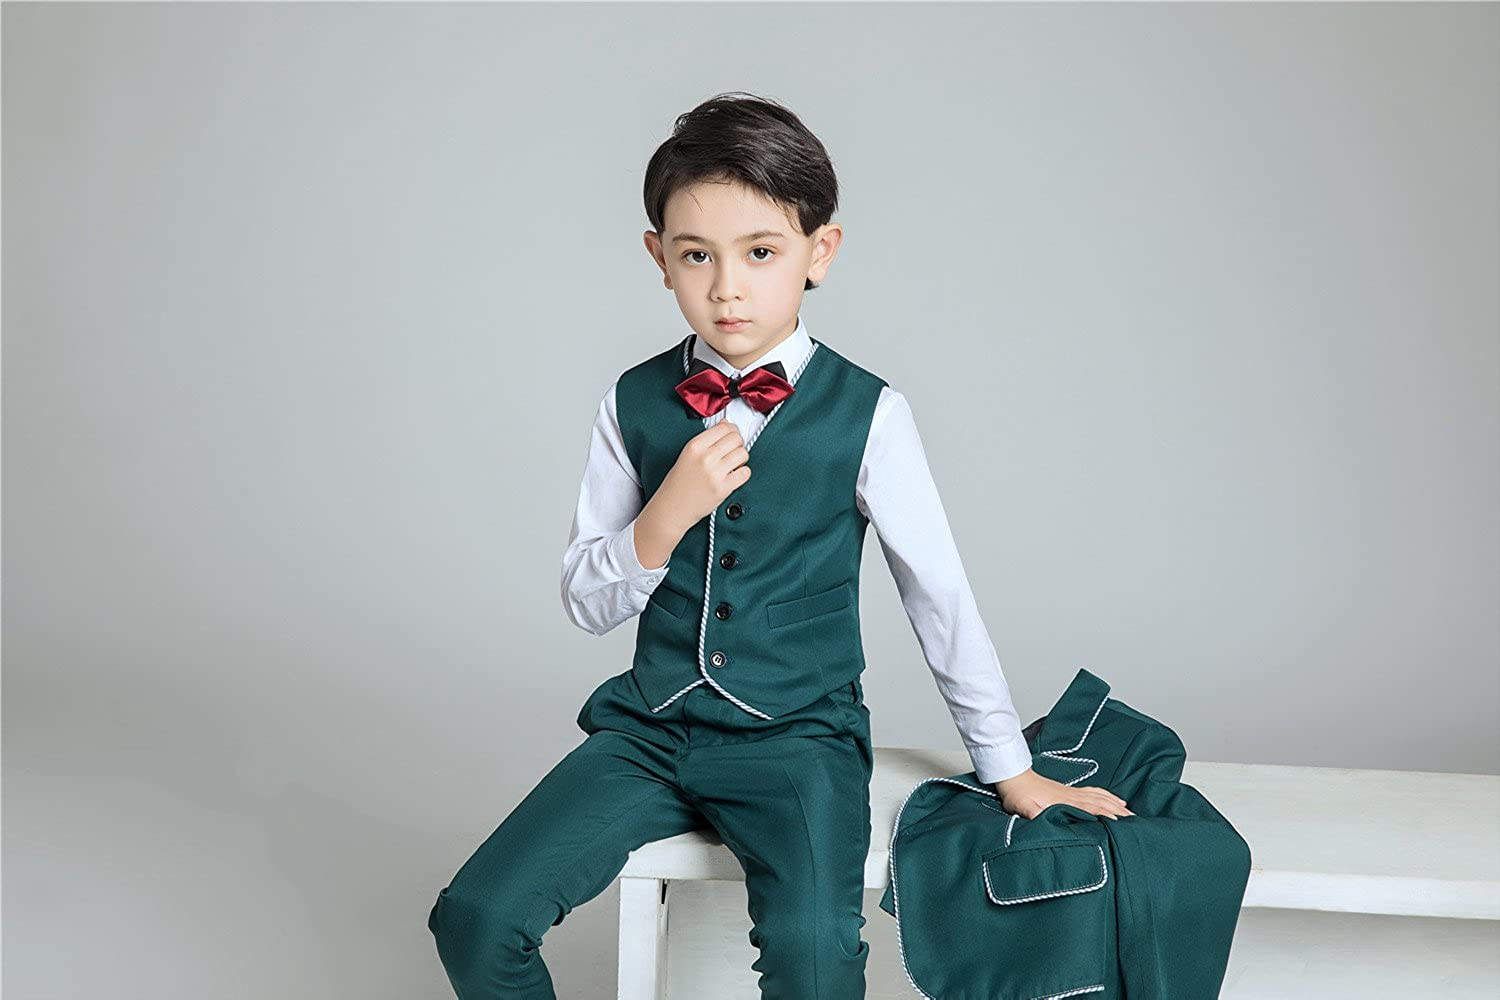 Amazon.com: Yuanlu 5 Piece Toddler Suits for Boys Tuxedo with Peak ...